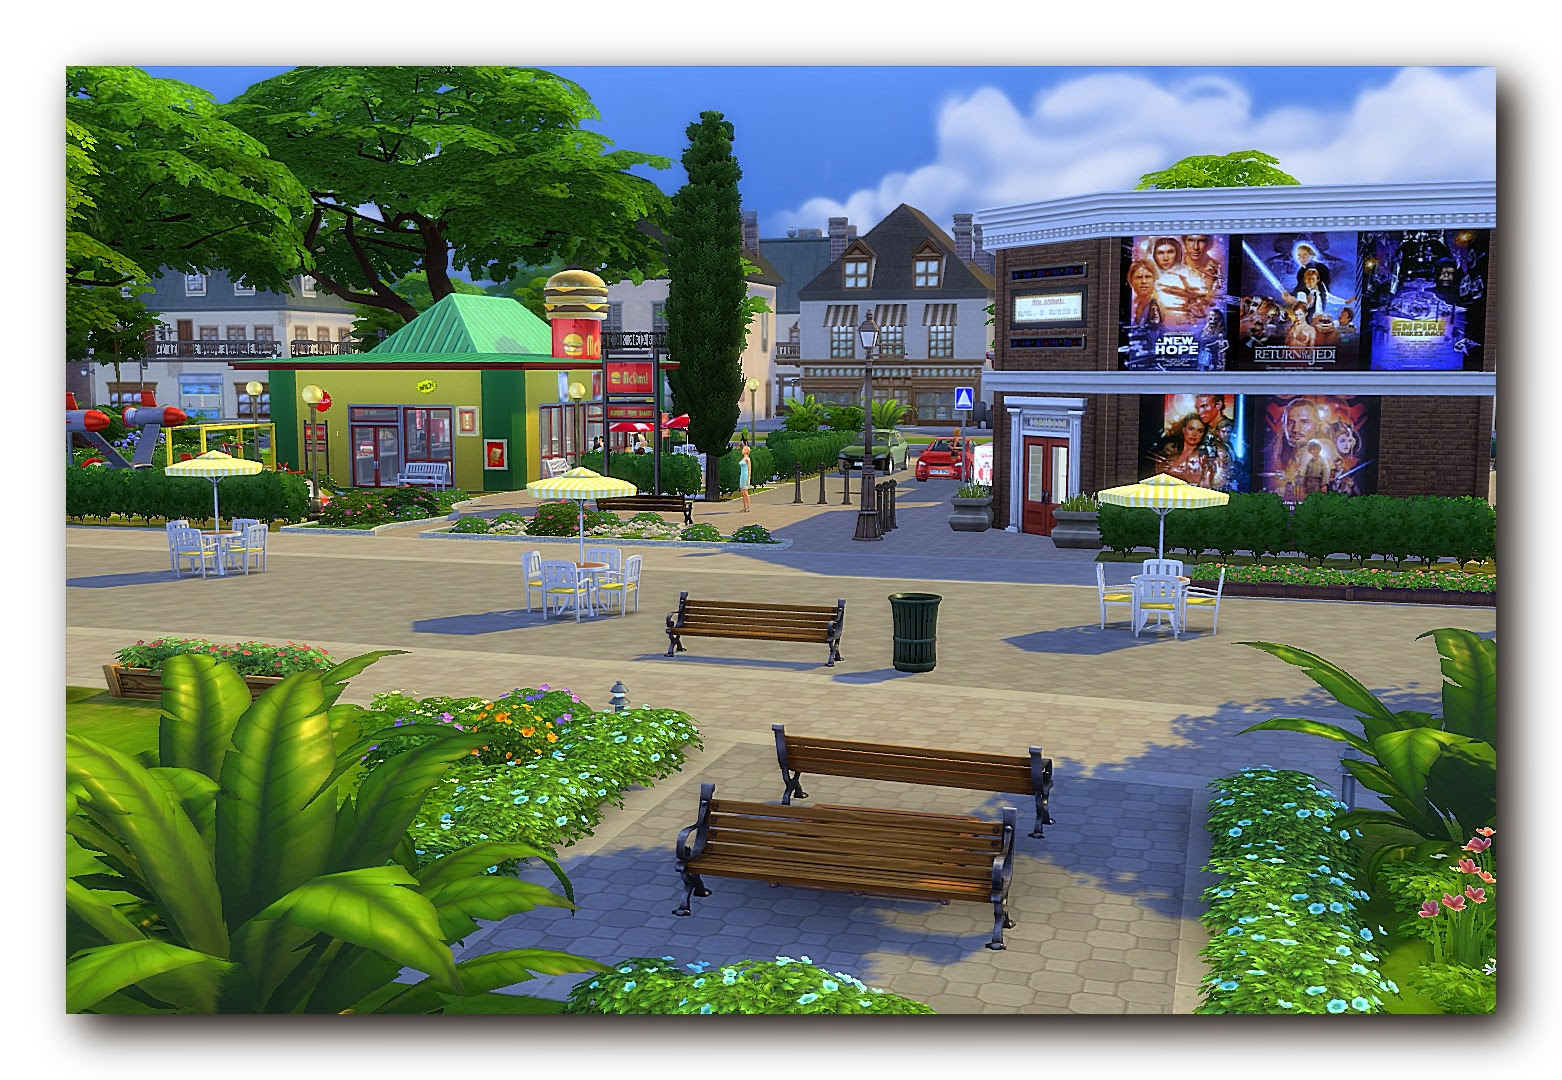 Sims street by Dalila